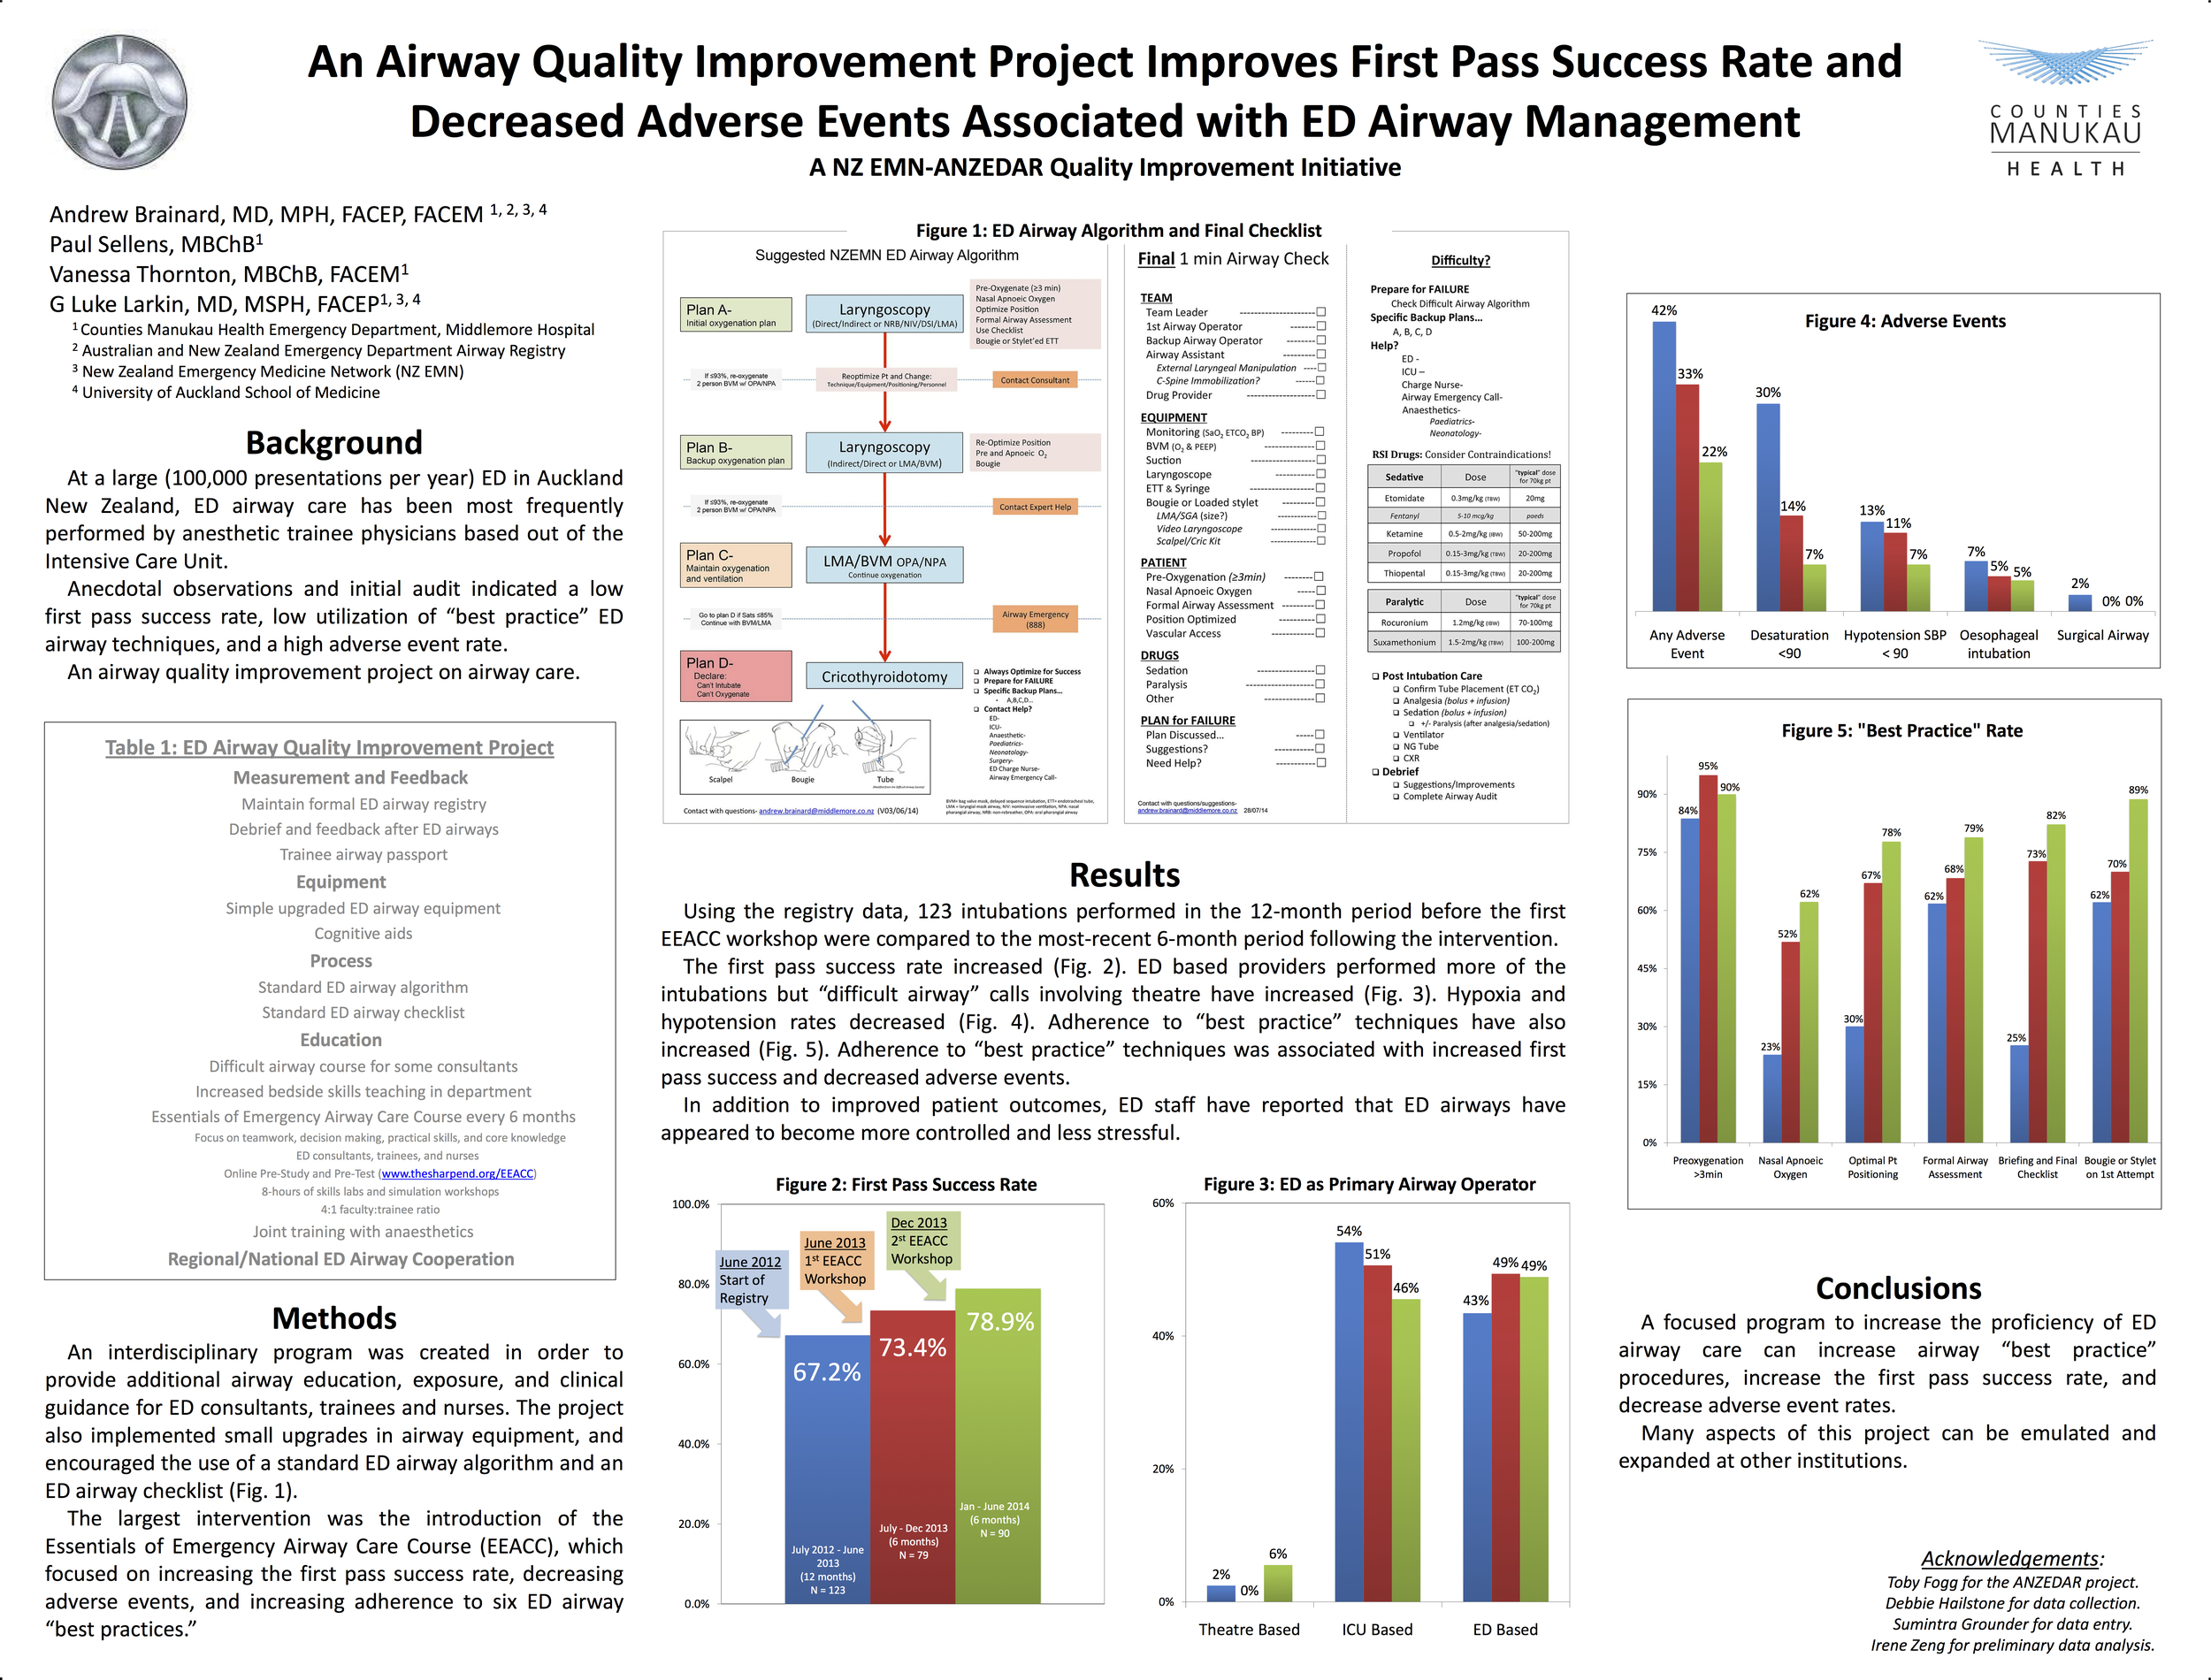 An Airway Quality Improvement Project Improves First Pass Success Rate and Decreases Adverse Events Associated with ED Airway Management.jpg